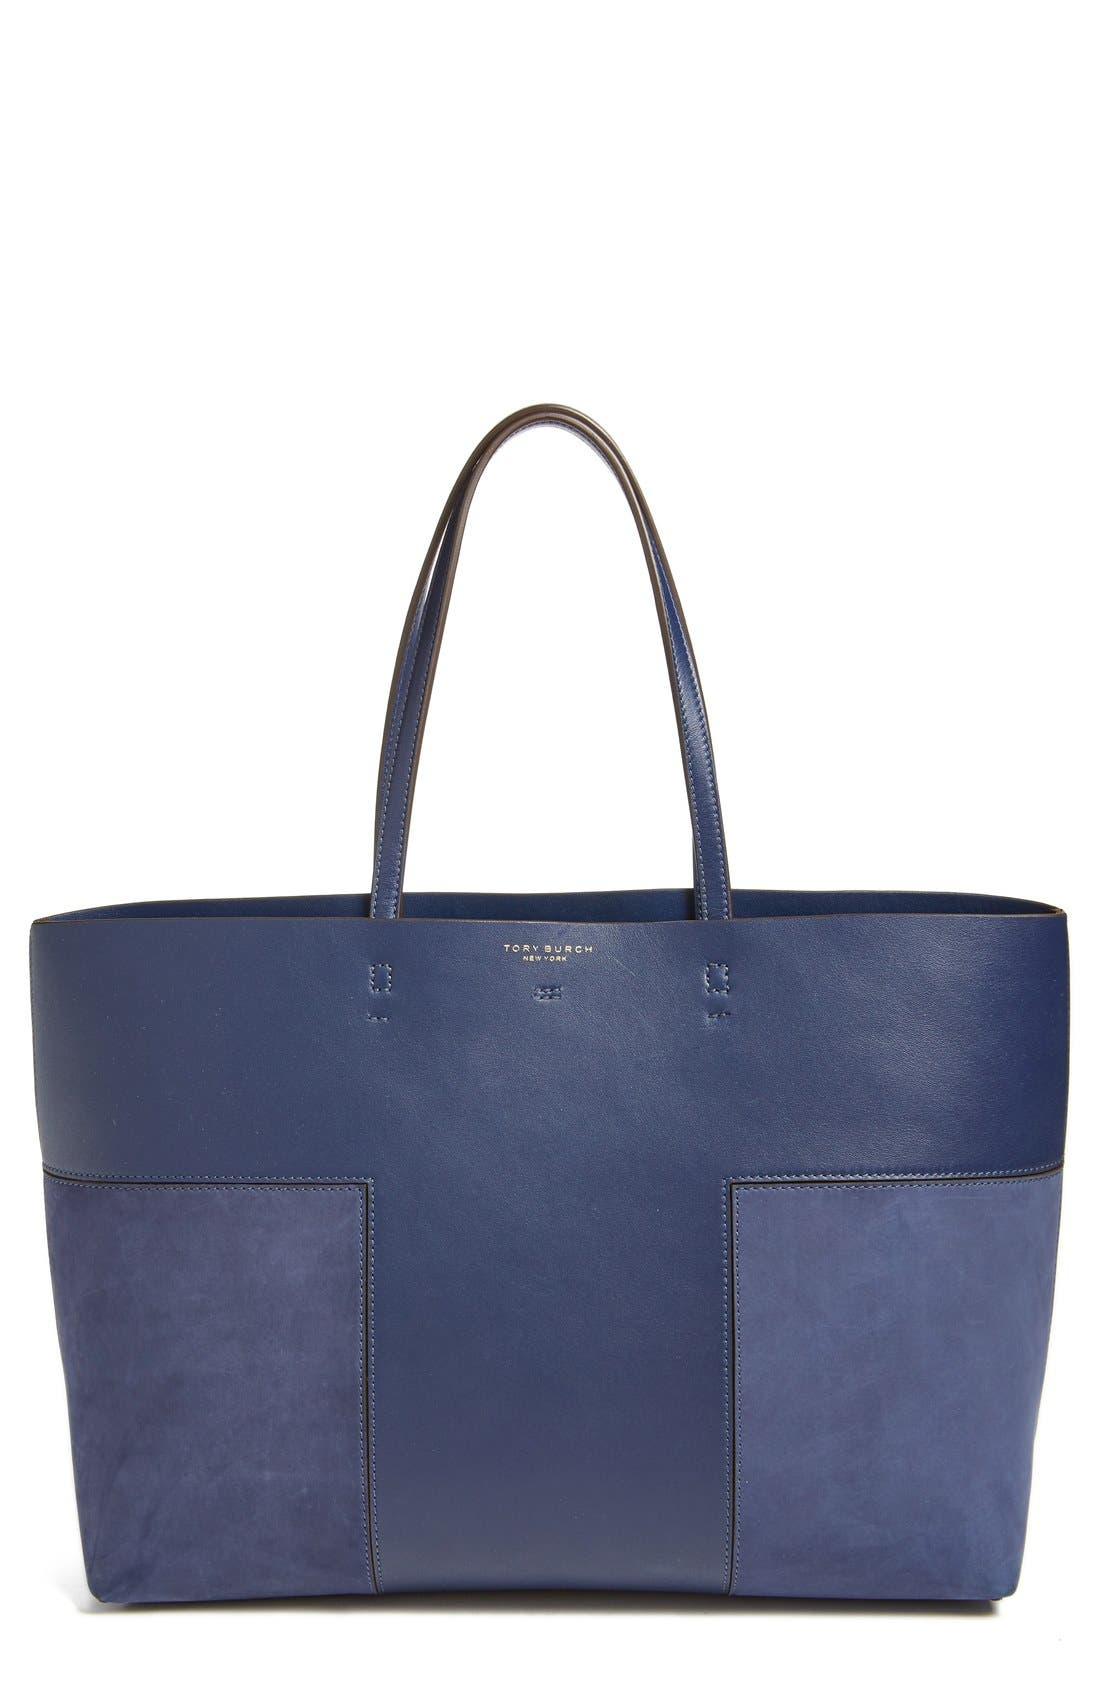 Alternate Image 1 Selected - Tory Burch 'Block T' Leather Tote